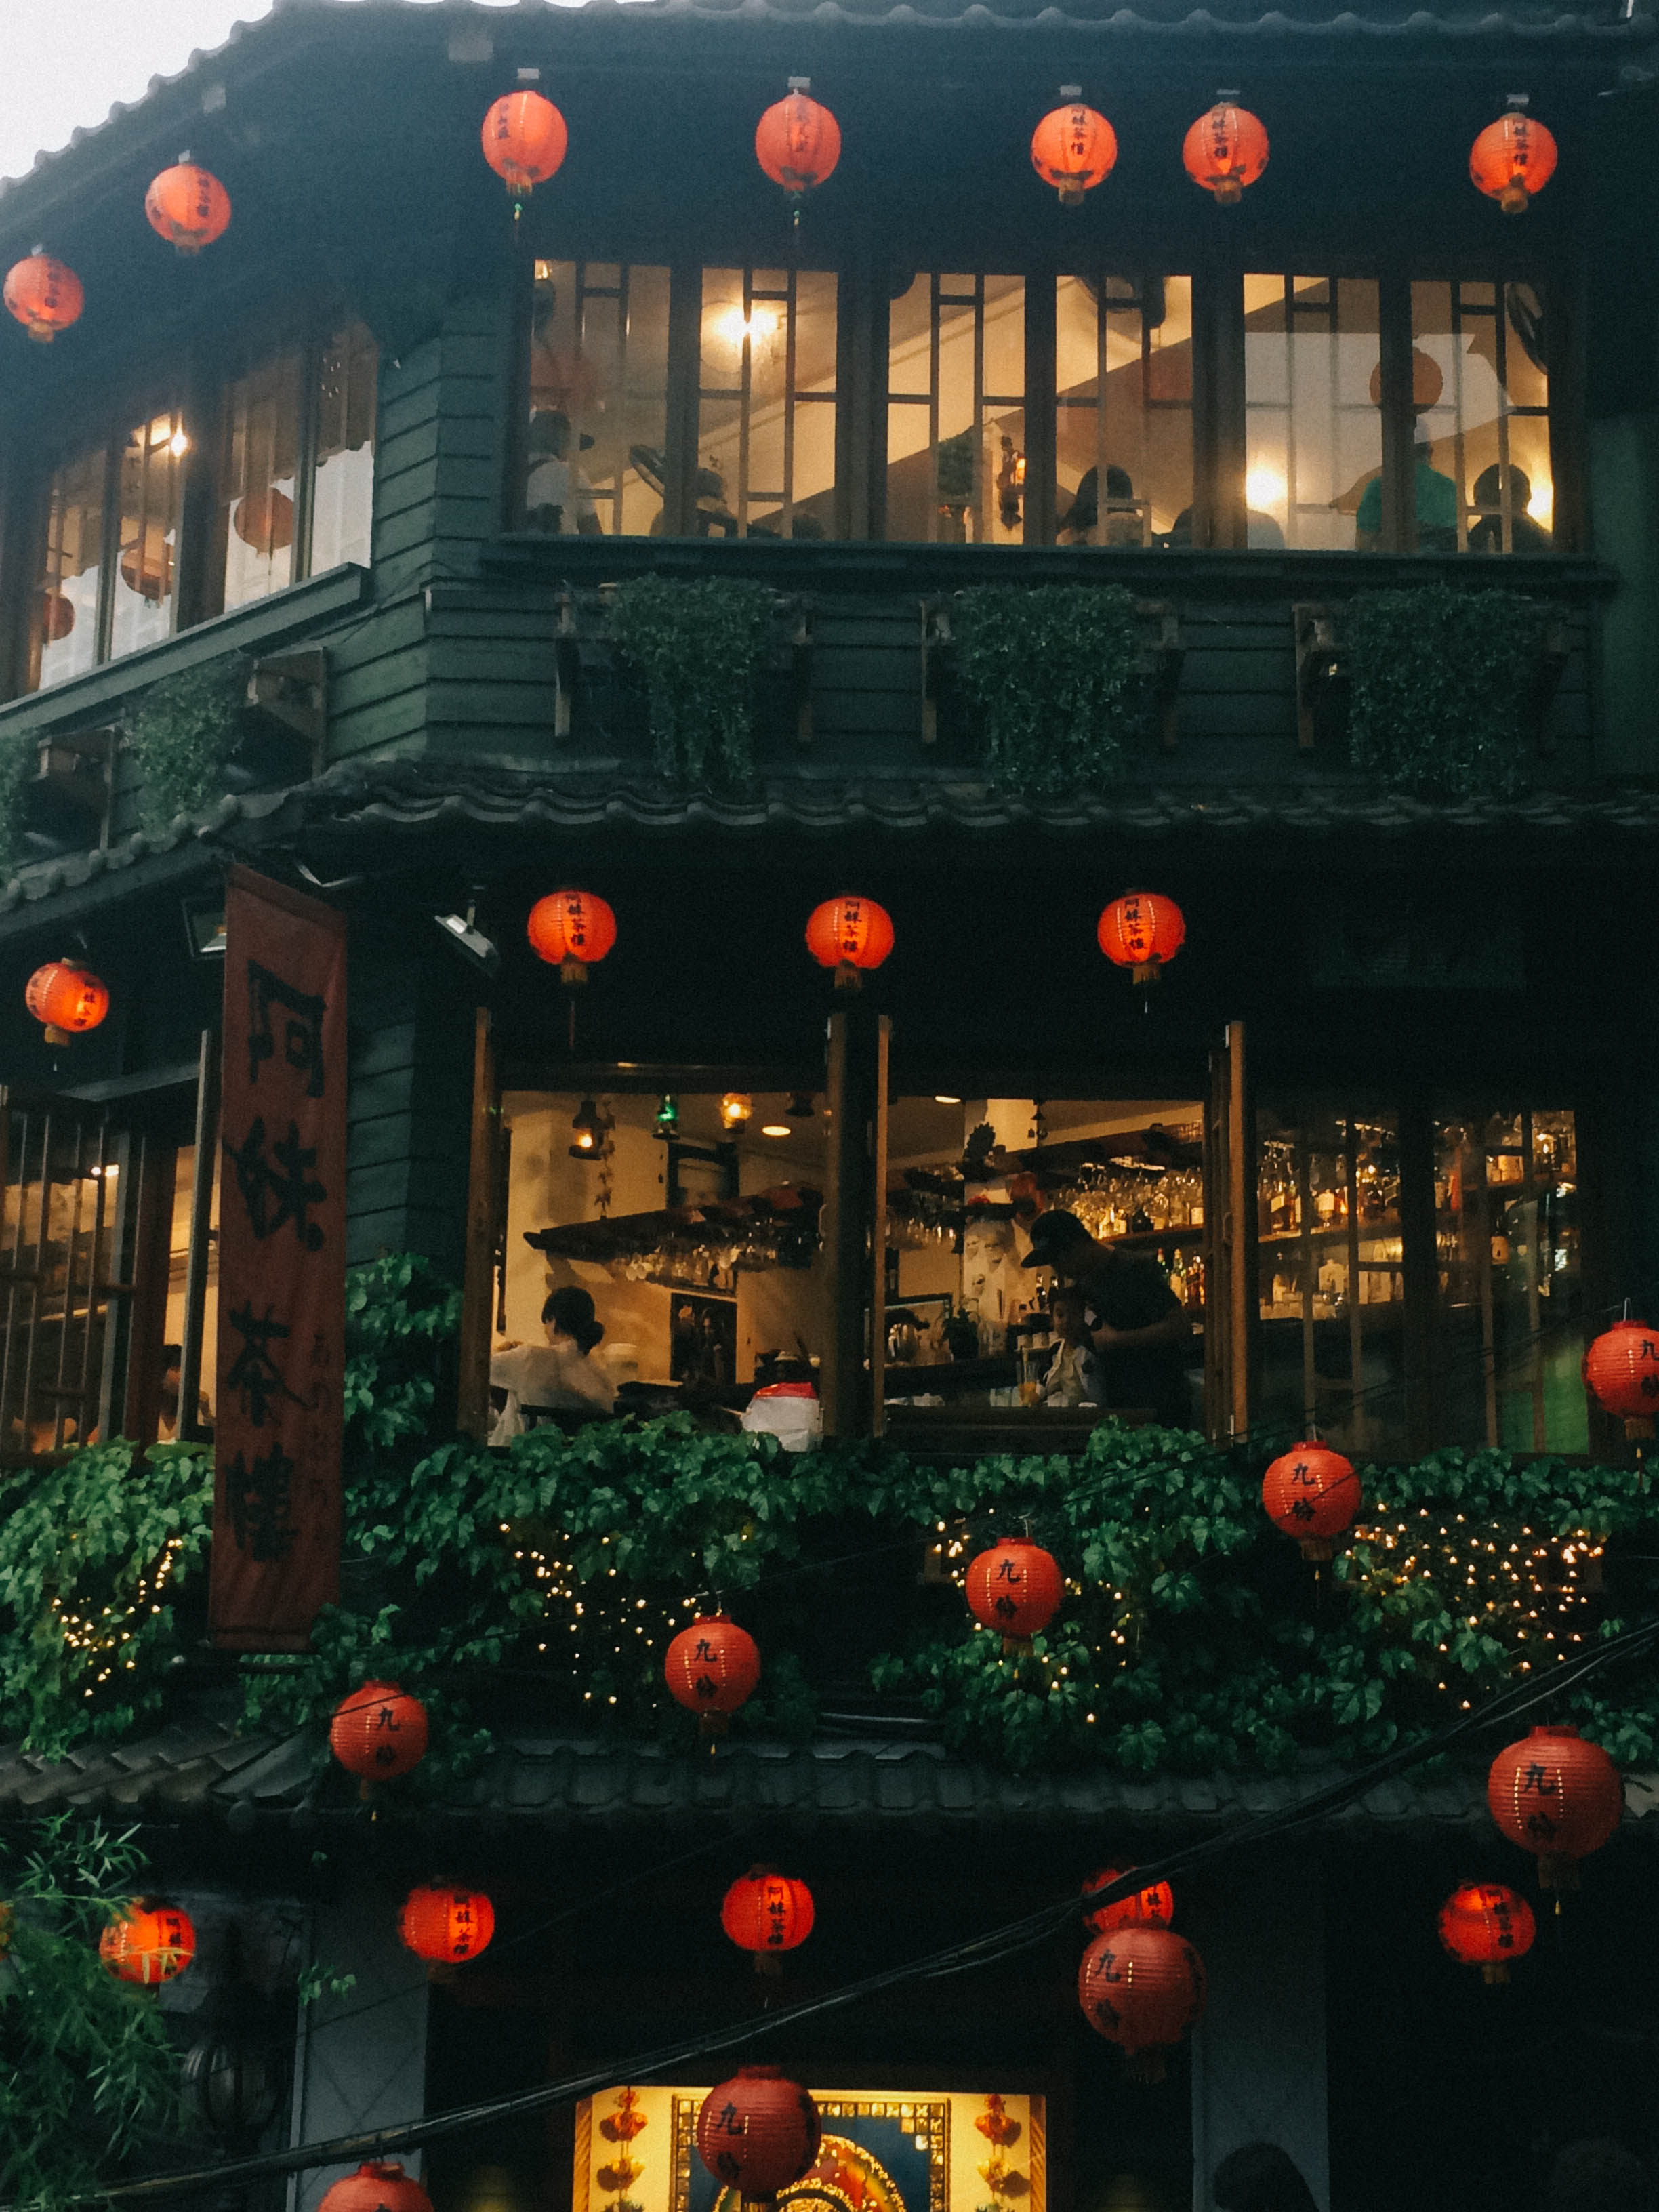 all the lanterns of jiufen